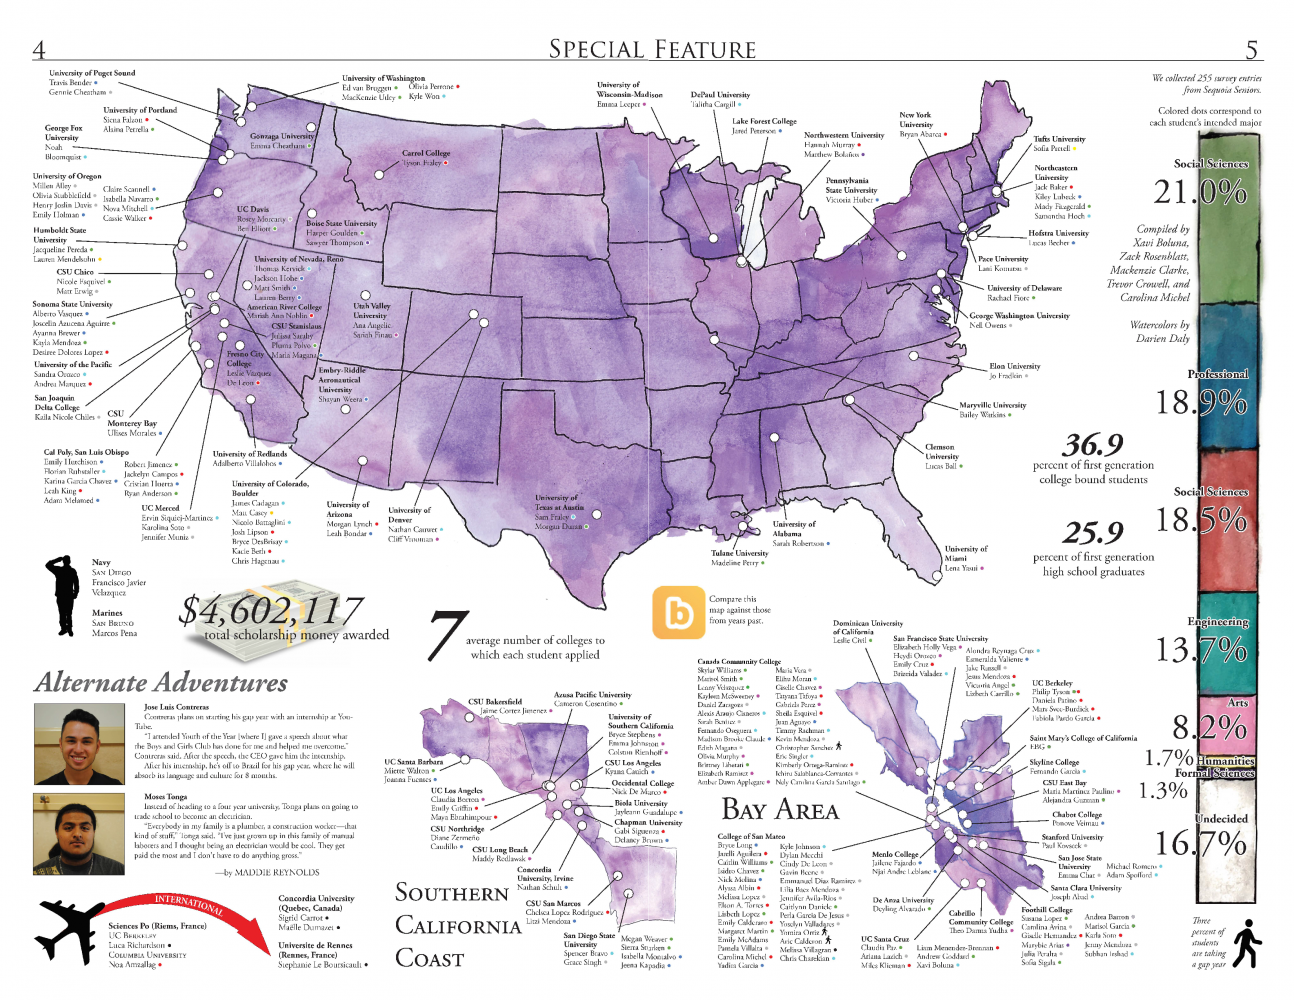 The 2017 College & Career Map